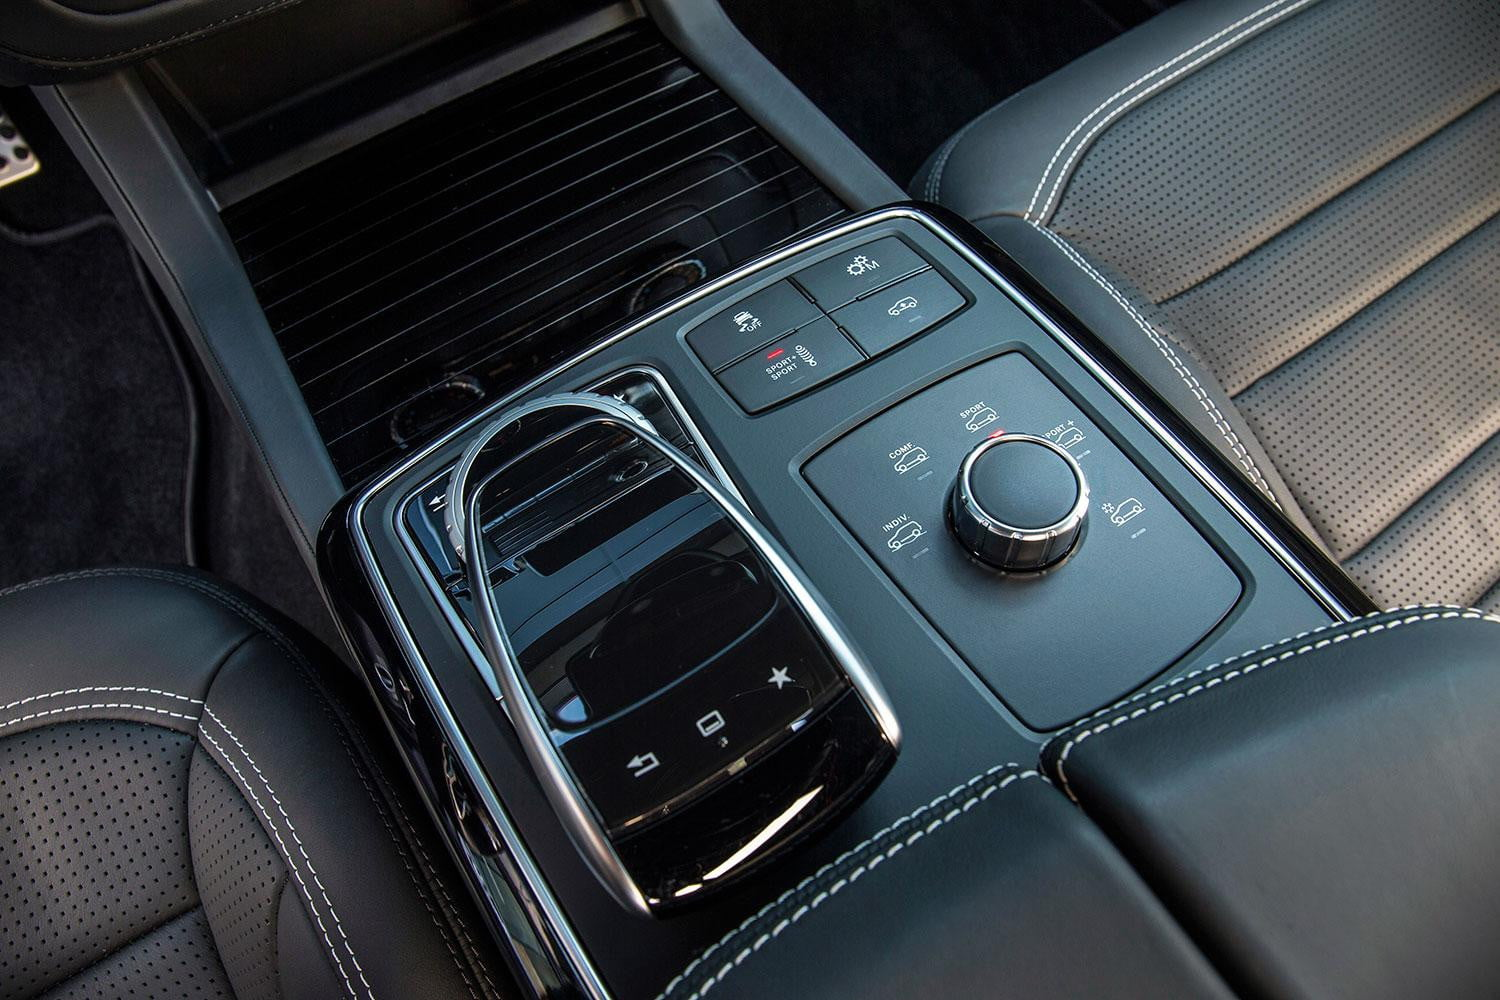 https://icdn6.digitaltrends.com/image/2016-mercedes-benz-amg-gle-63s-coupe-center-console-detail-1500x1000.jpg?ver=1